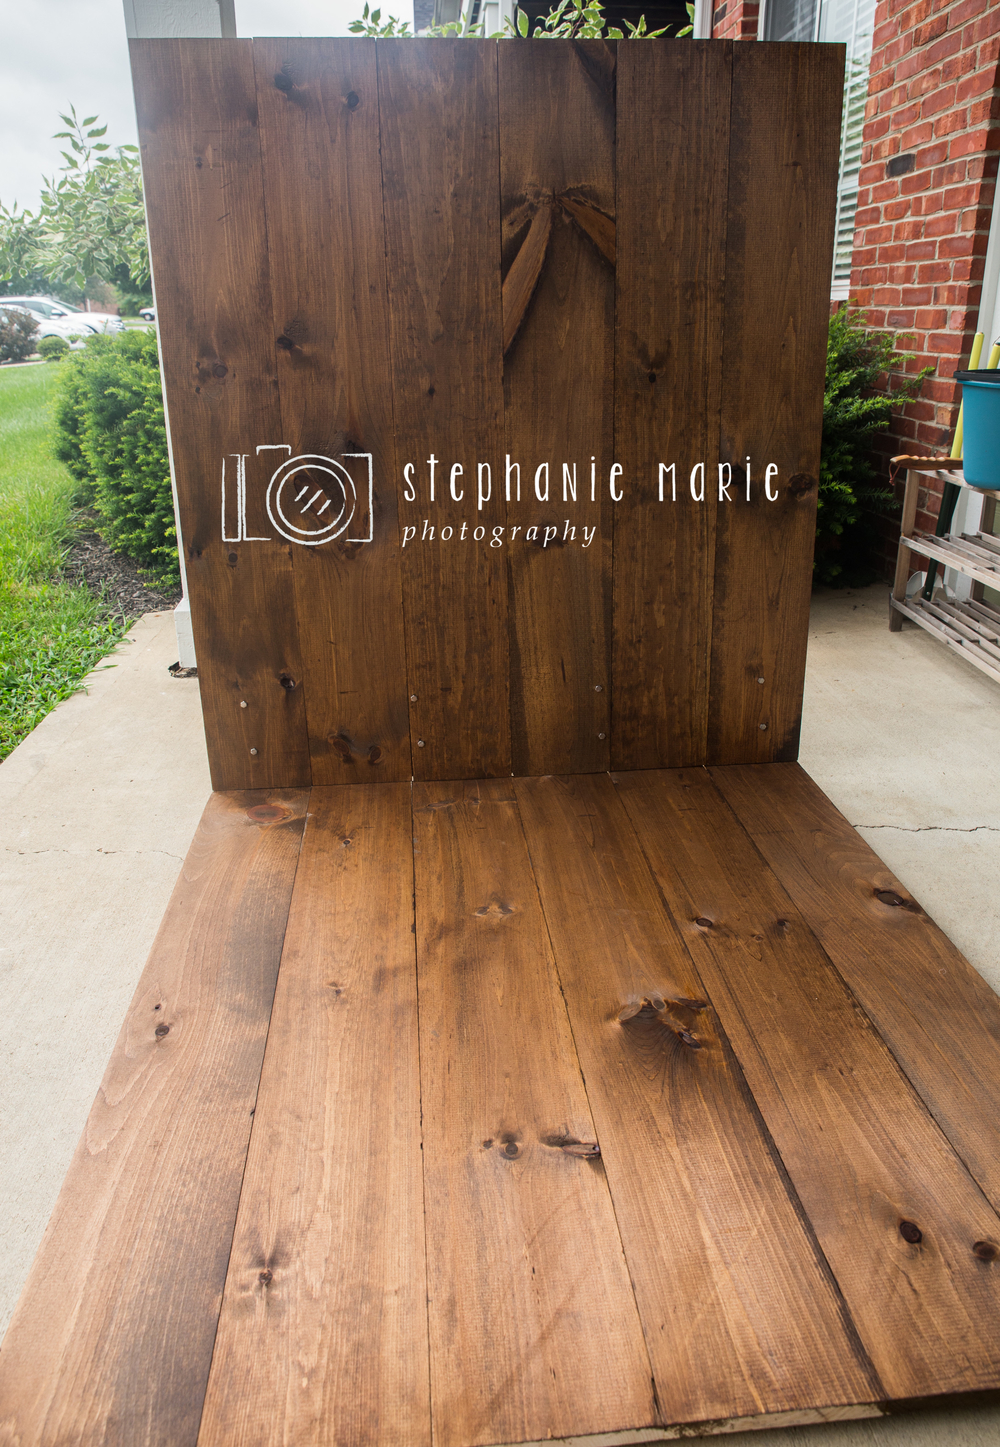 Diy Faux Hardwood Wall Floor Stephanie Marie